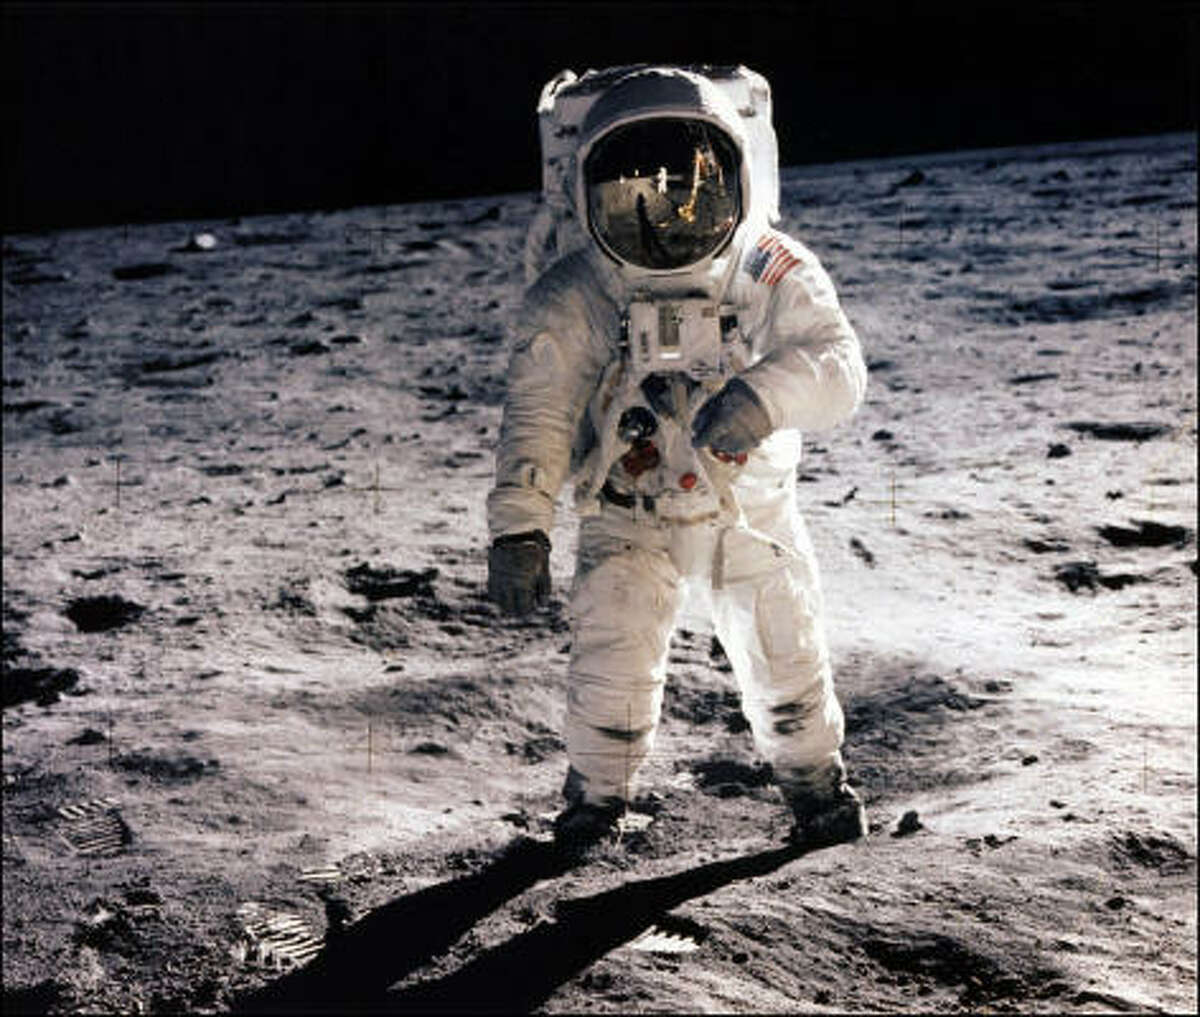 Edwin E. Aldrin Jr. walking on the surface of the moon.